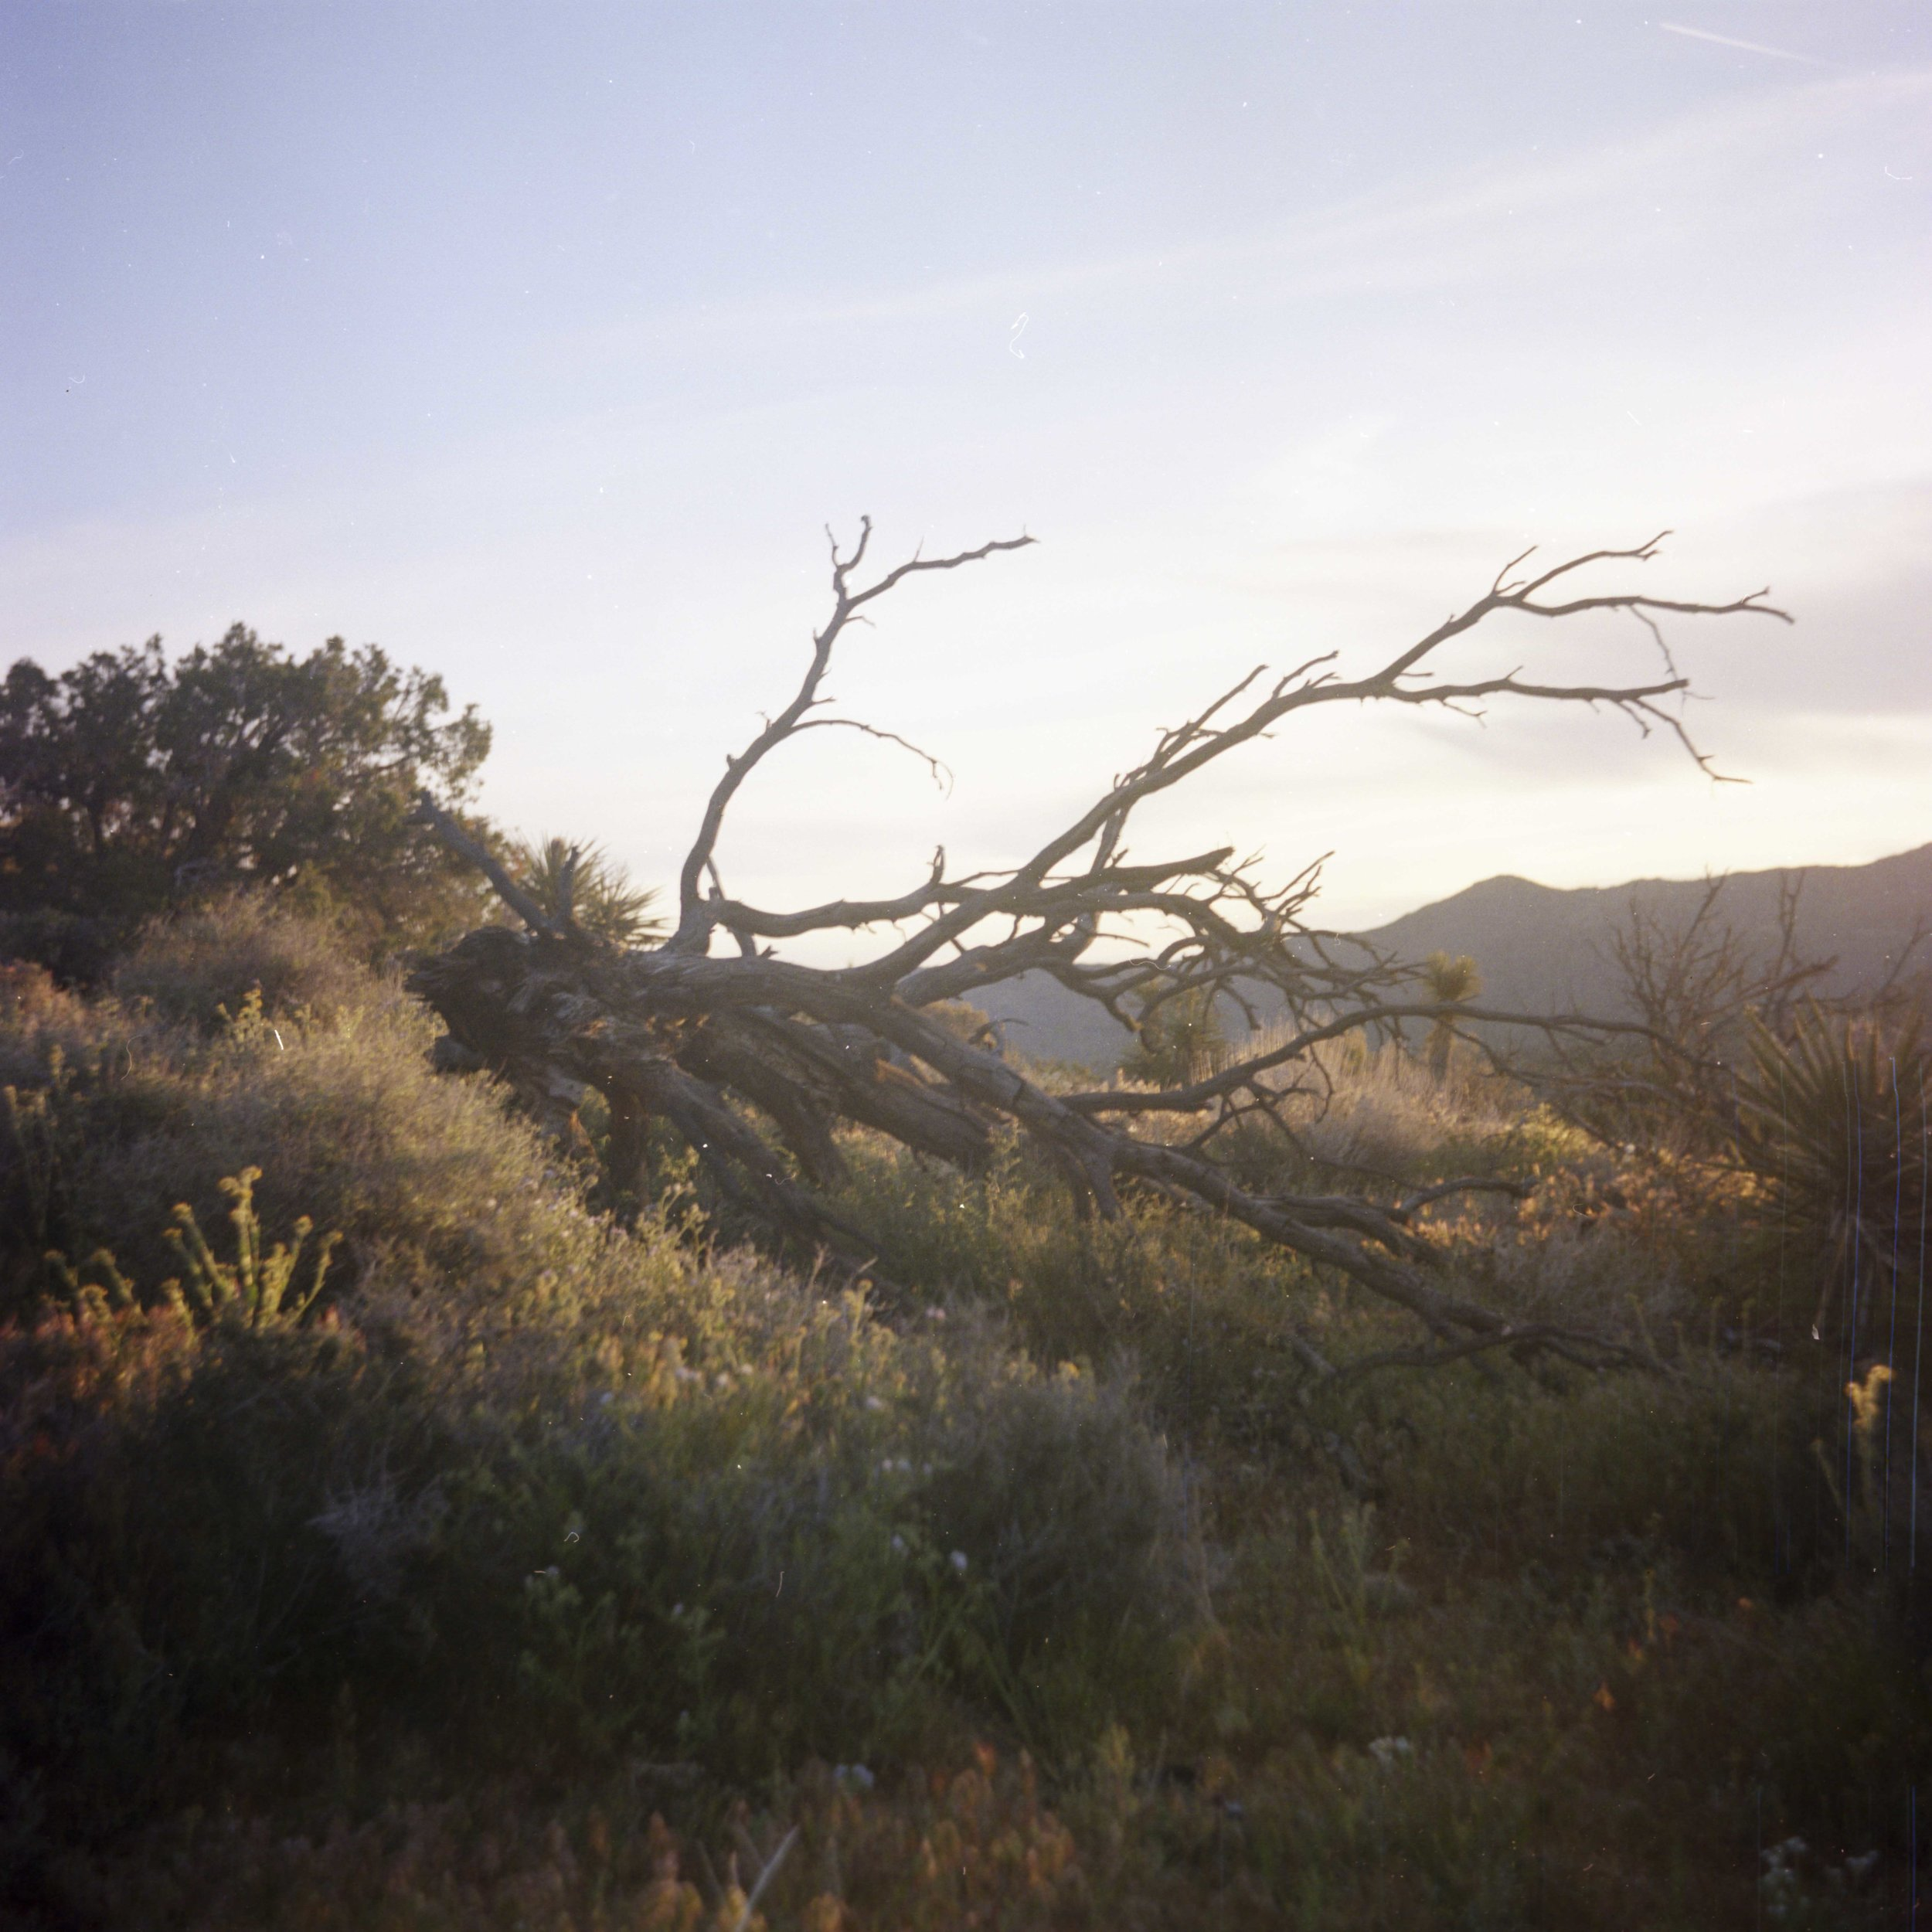 Medium Format Hiking008.jpg